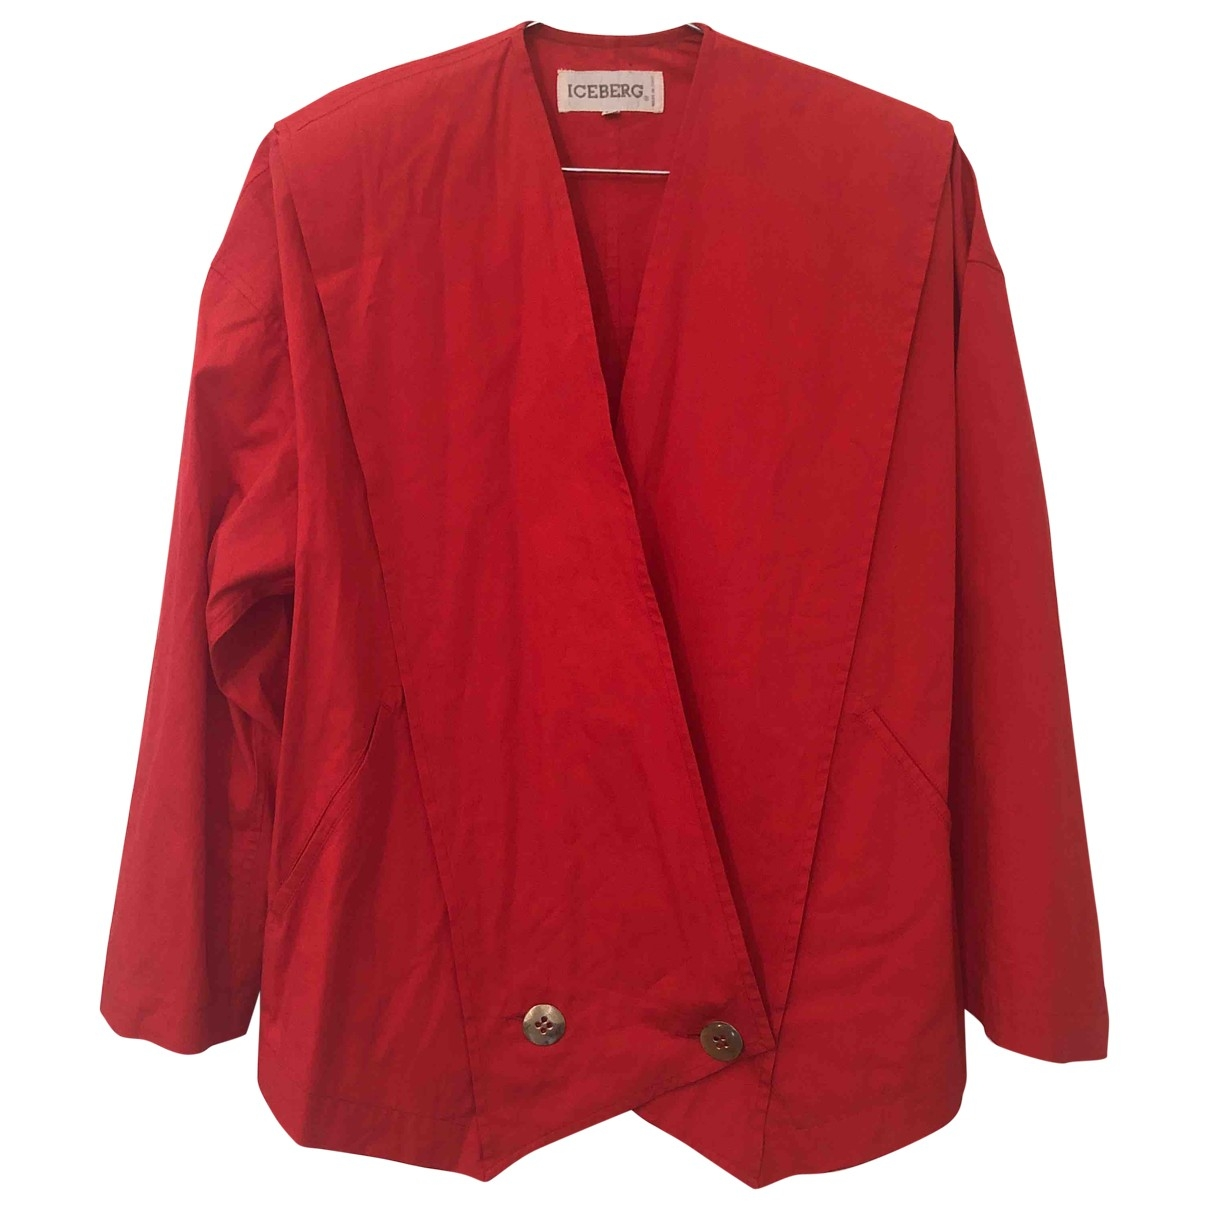 Iceberg \N Red Cotton jacket for Women 38 IT